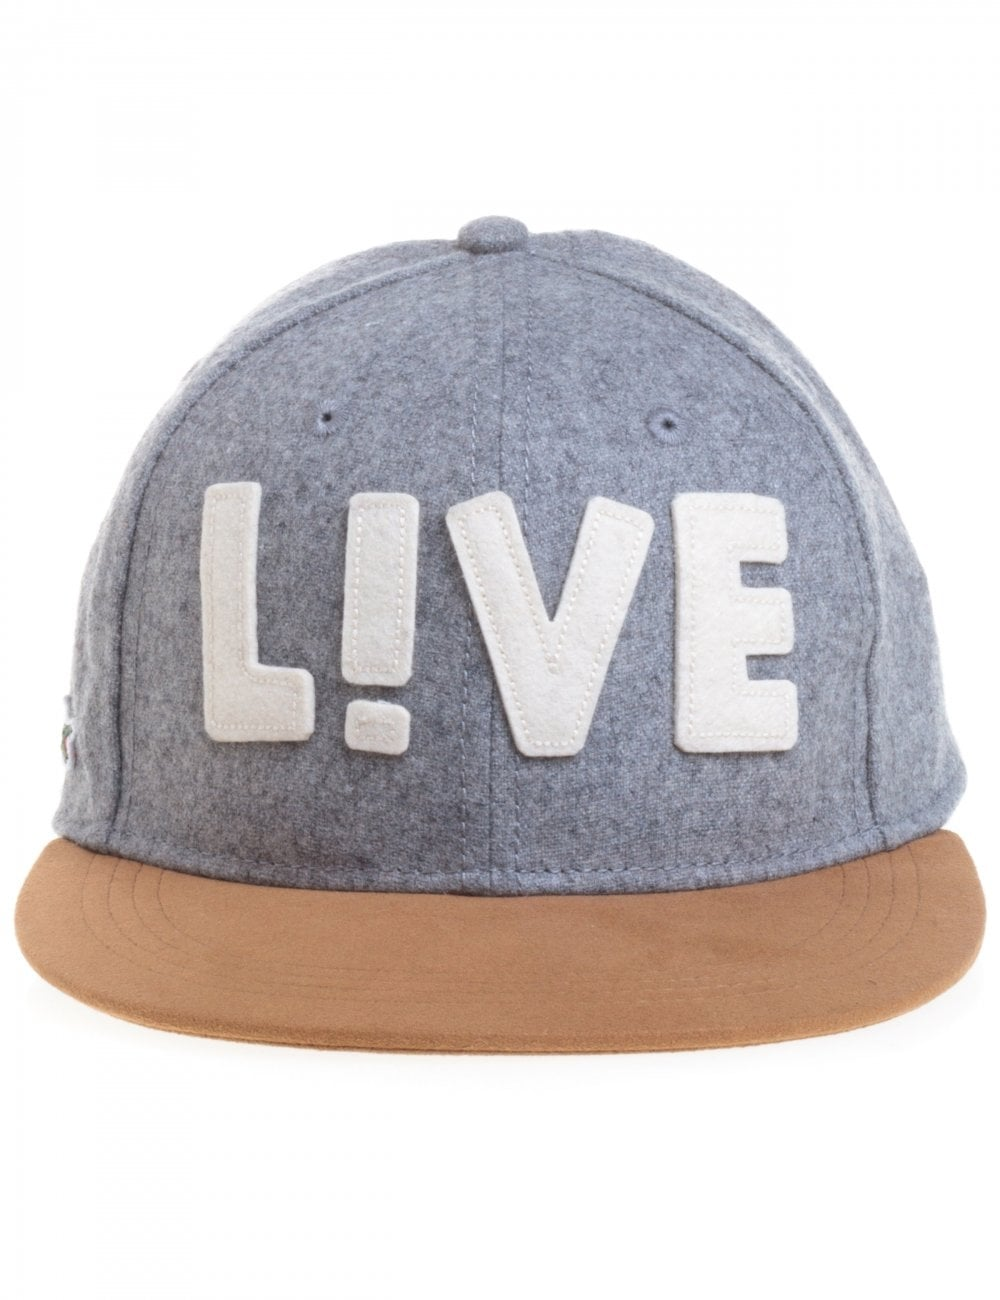 Lacoste Live Flannel Cap - Silver - Accessories from Fat Buddha Store UK 310d1daedbd